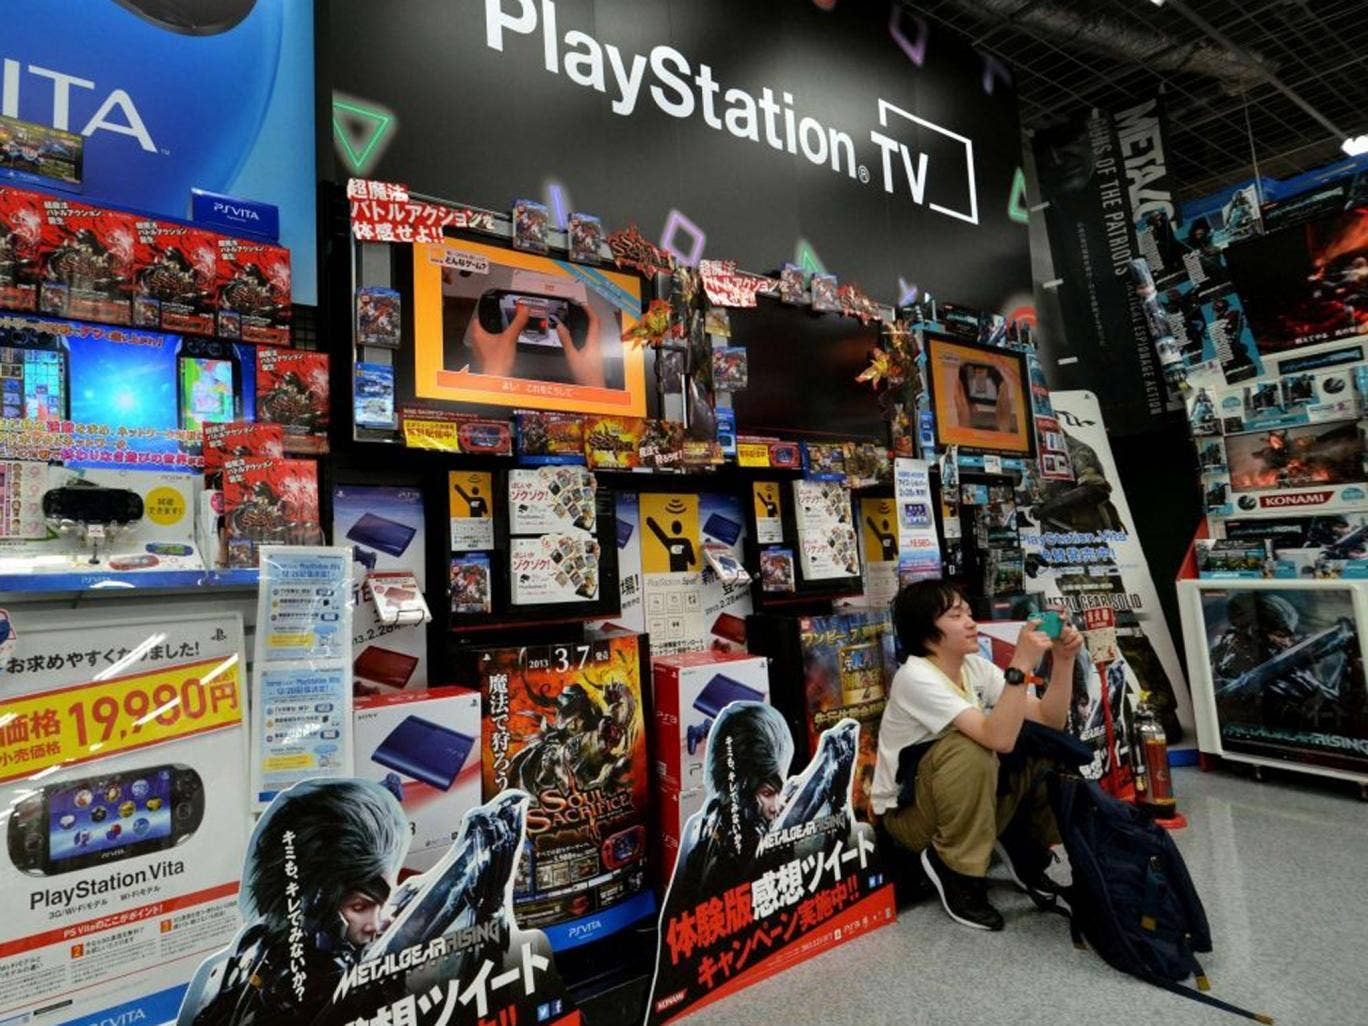 A Japanese video game fan in a Tokyo electrics shop as Sony prepares to reveal its vision of the future of home entertainment by providing a glimpse of a new-generation PlayStation console that streams games, films, music and more